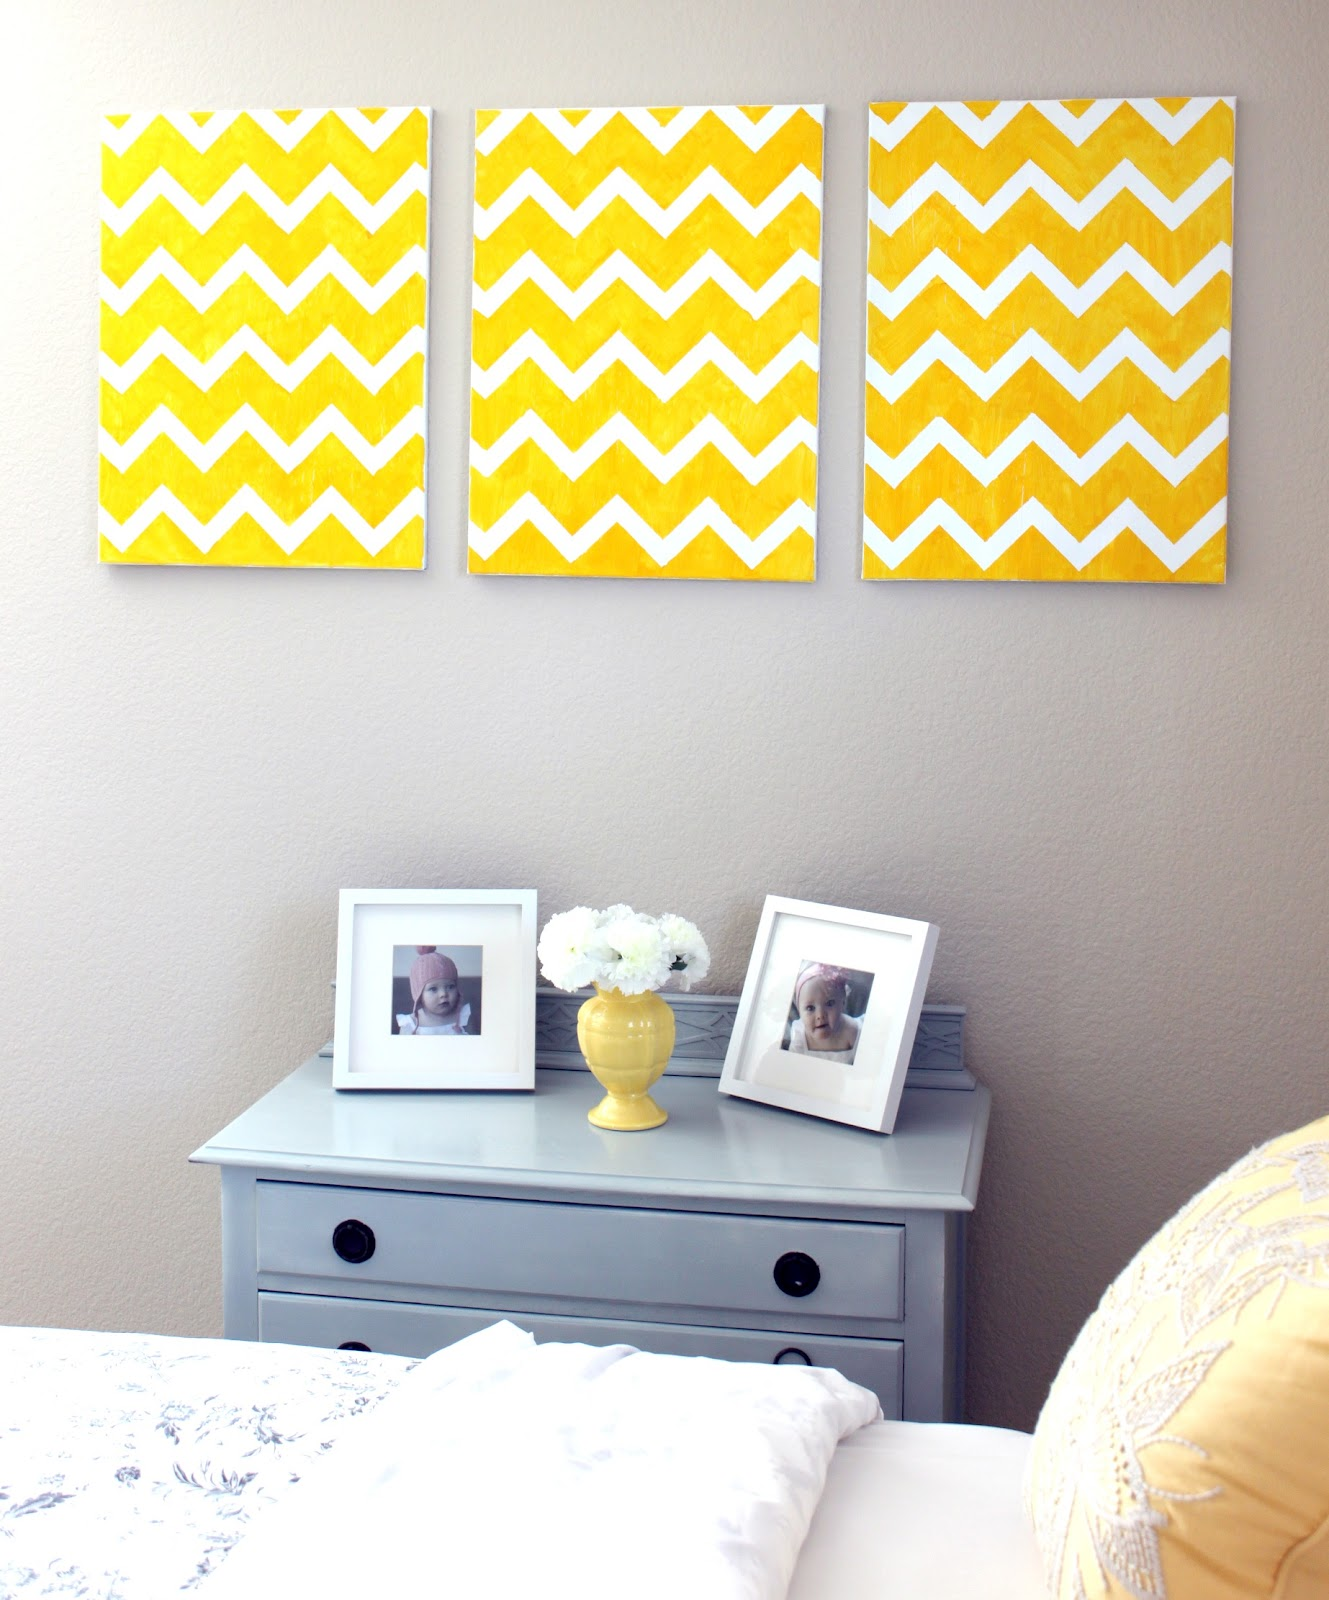 DIY Chevron Wall Art | Craftistas